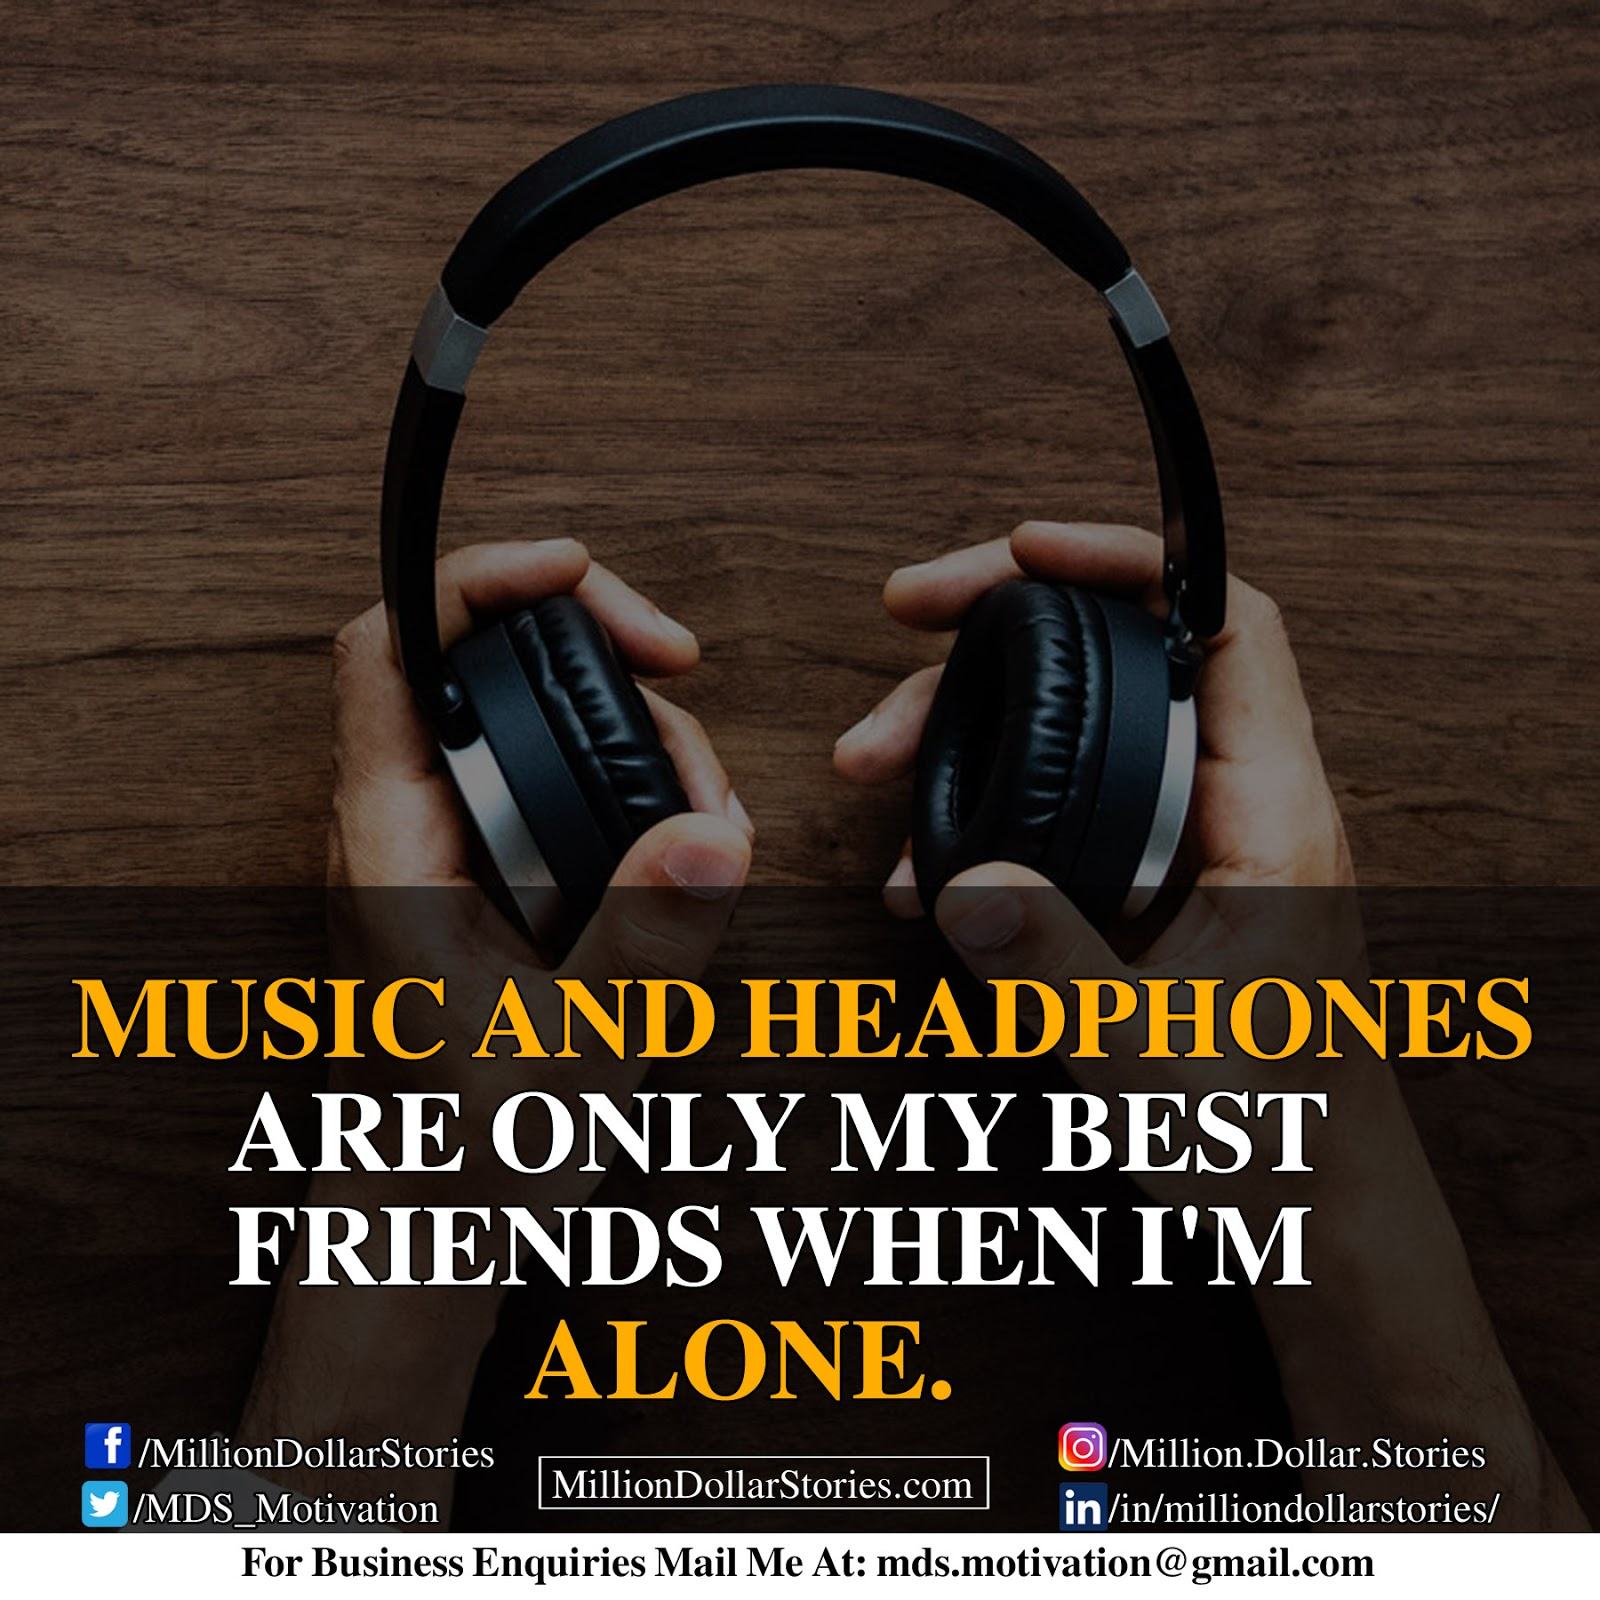 MUSIC AND HEADPHONES ARE ONLY MY BEST FRIENDS WHEN I'M ALONE.